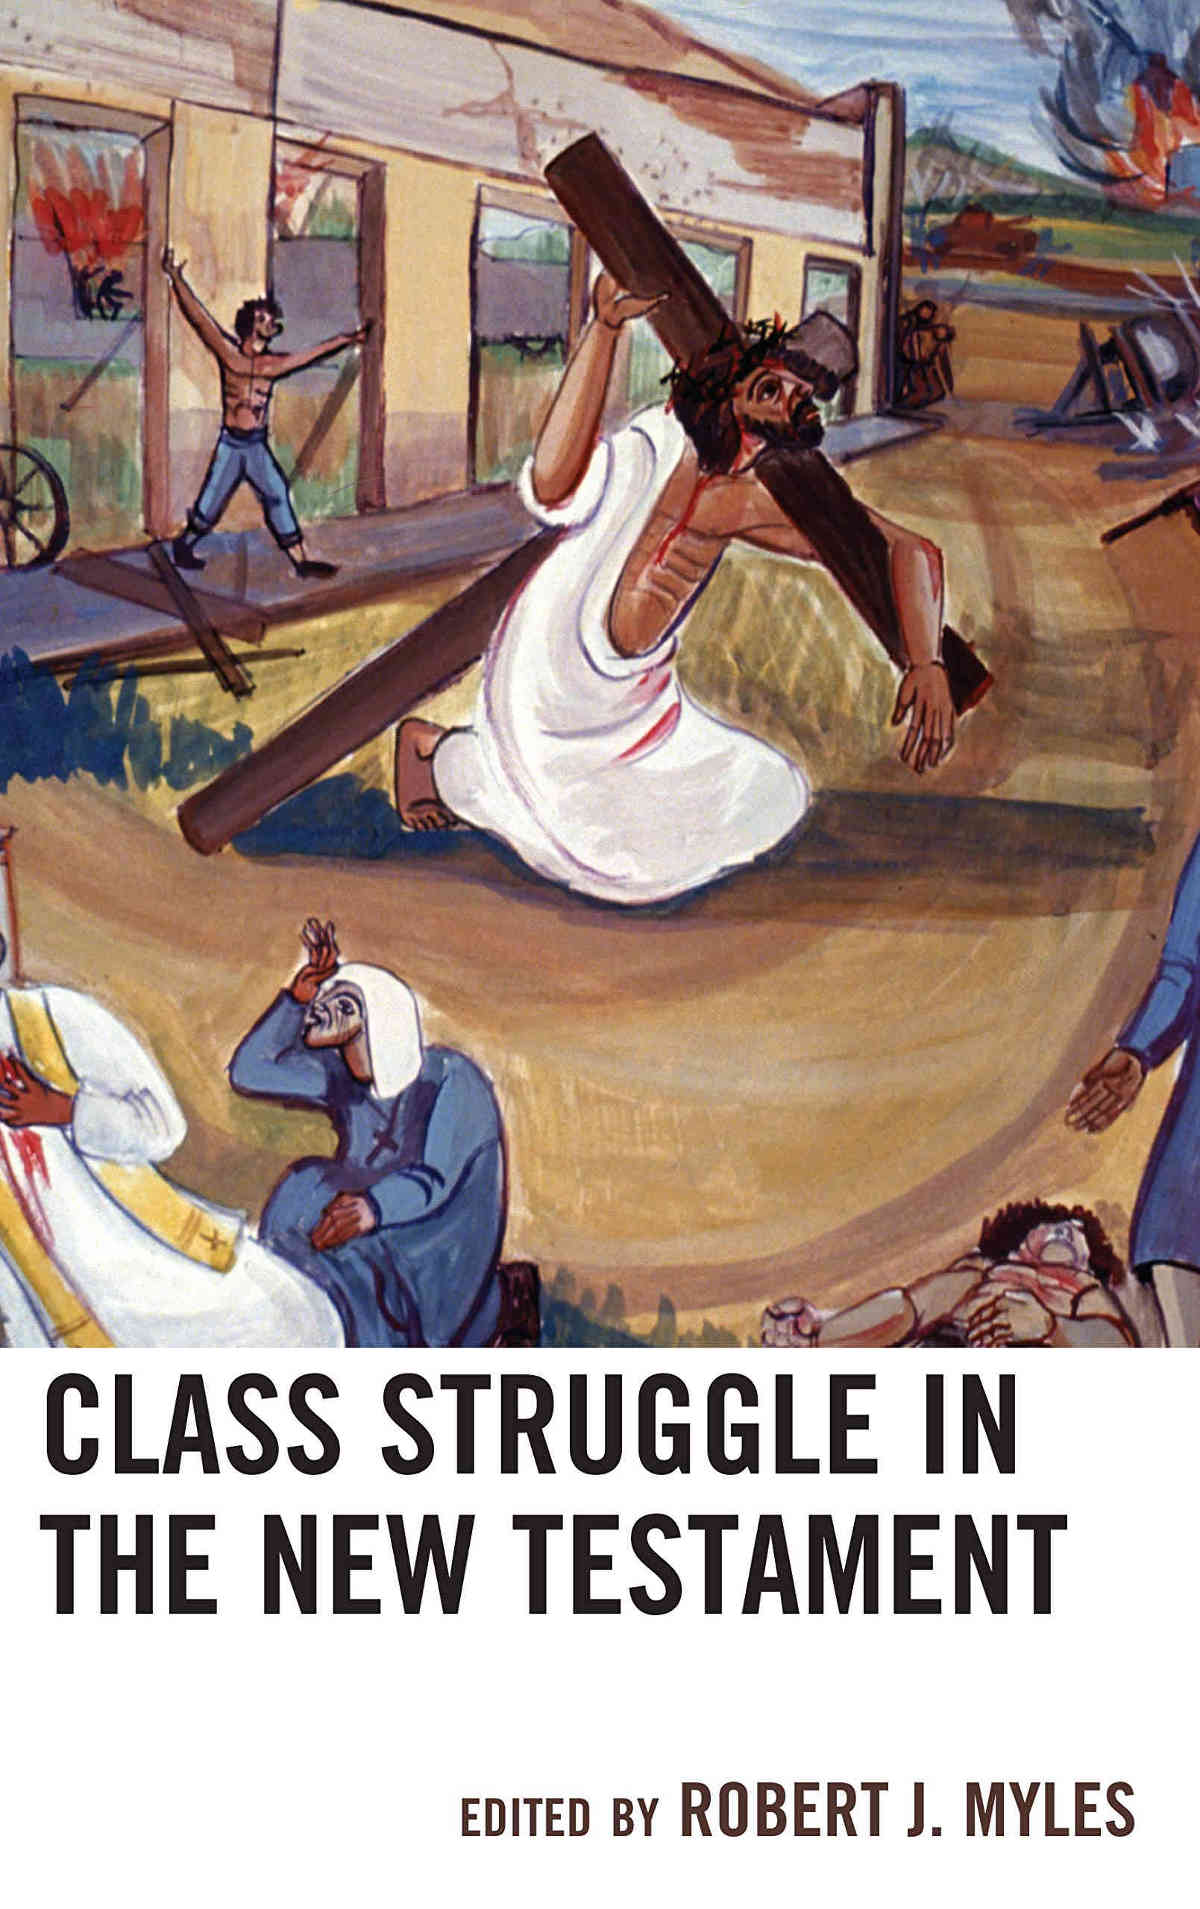 MYLES, R. J. (ed.) Class Struggle in the New Testament. Lanham, MD: Lexington Books/Fortress Academic, 2019, 298 p.